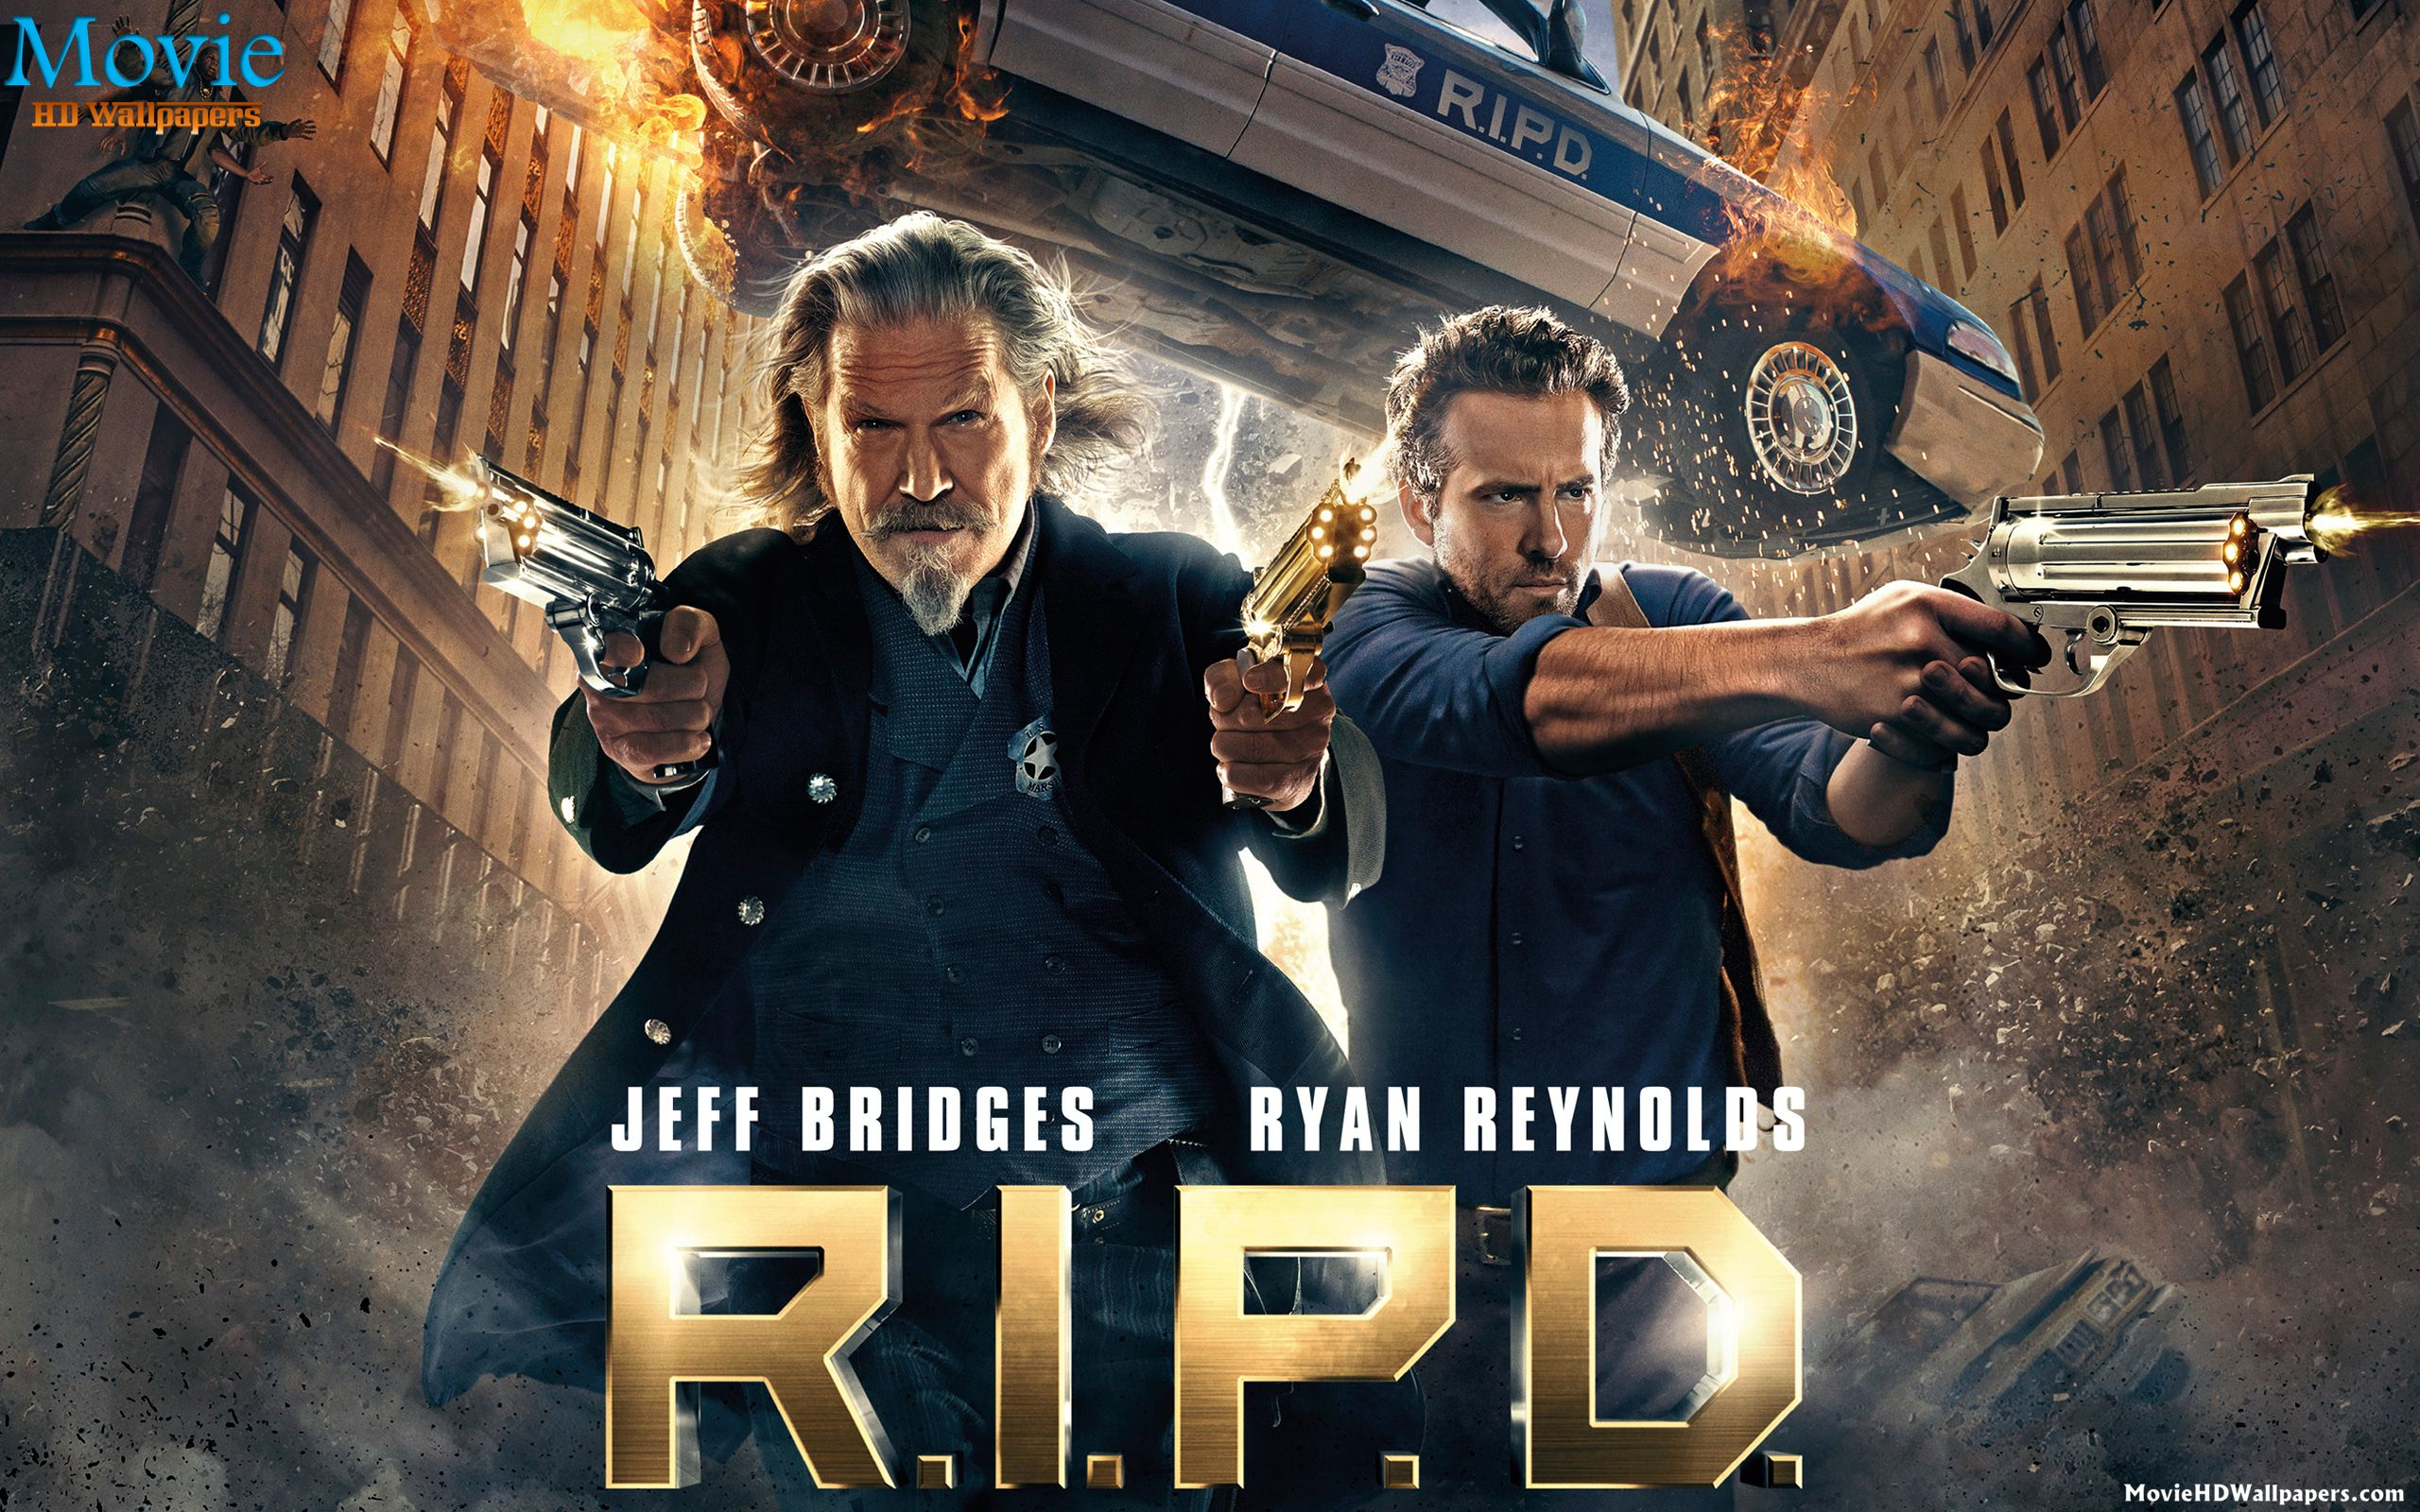 R.I.P.D. (2013) #1 - Movie HD Wallpapers